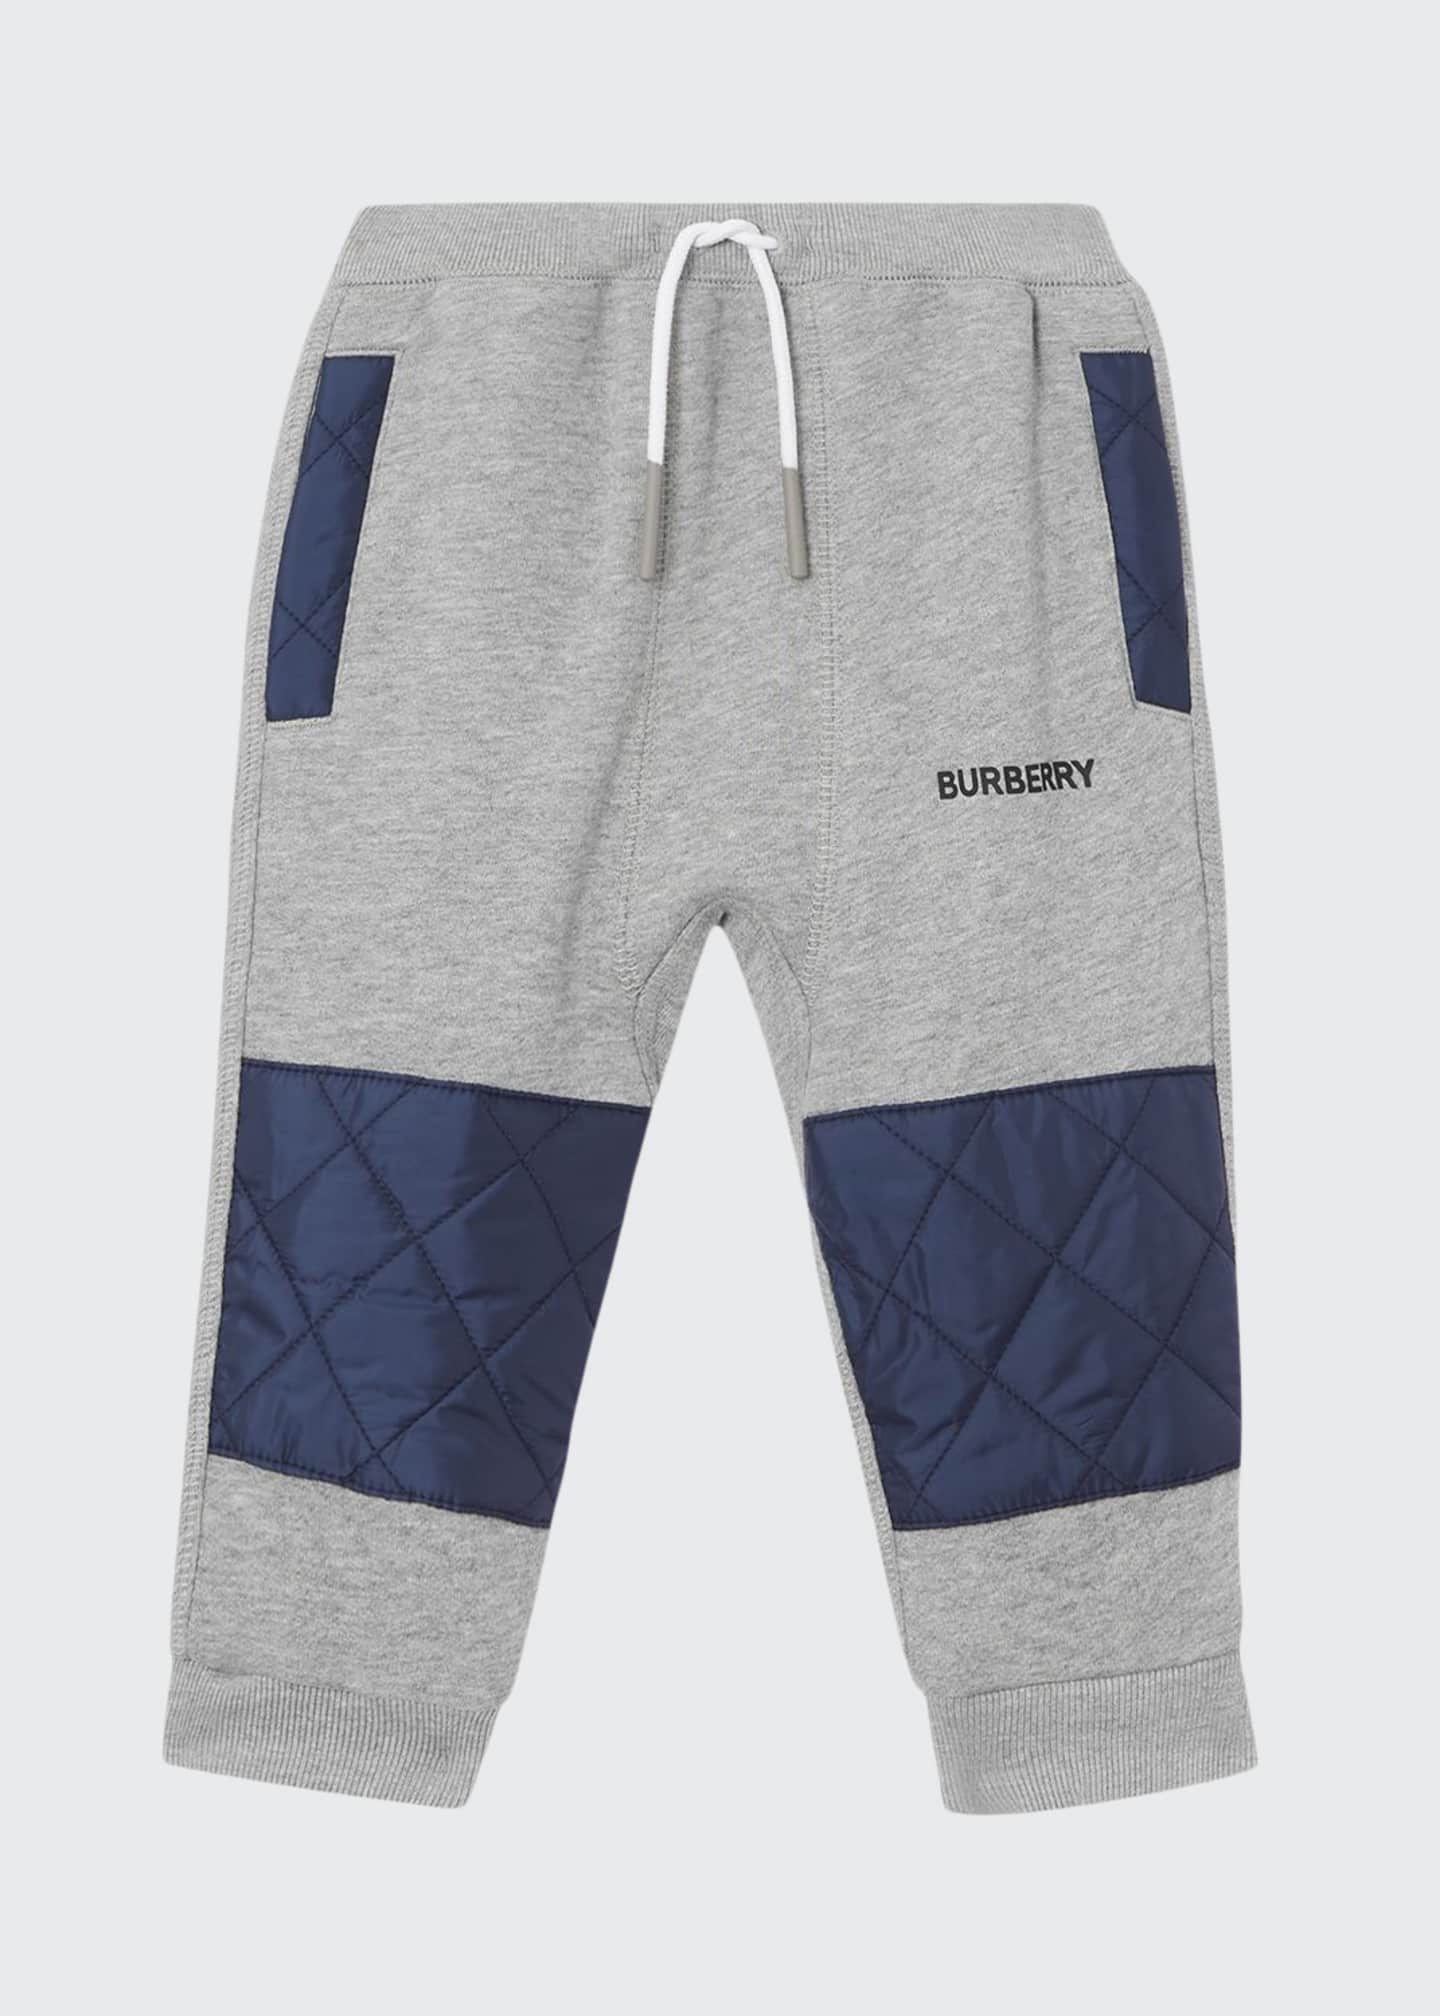 Burberry Boy's Mio Drawstring Sweatpants w/ Quilted Insets,